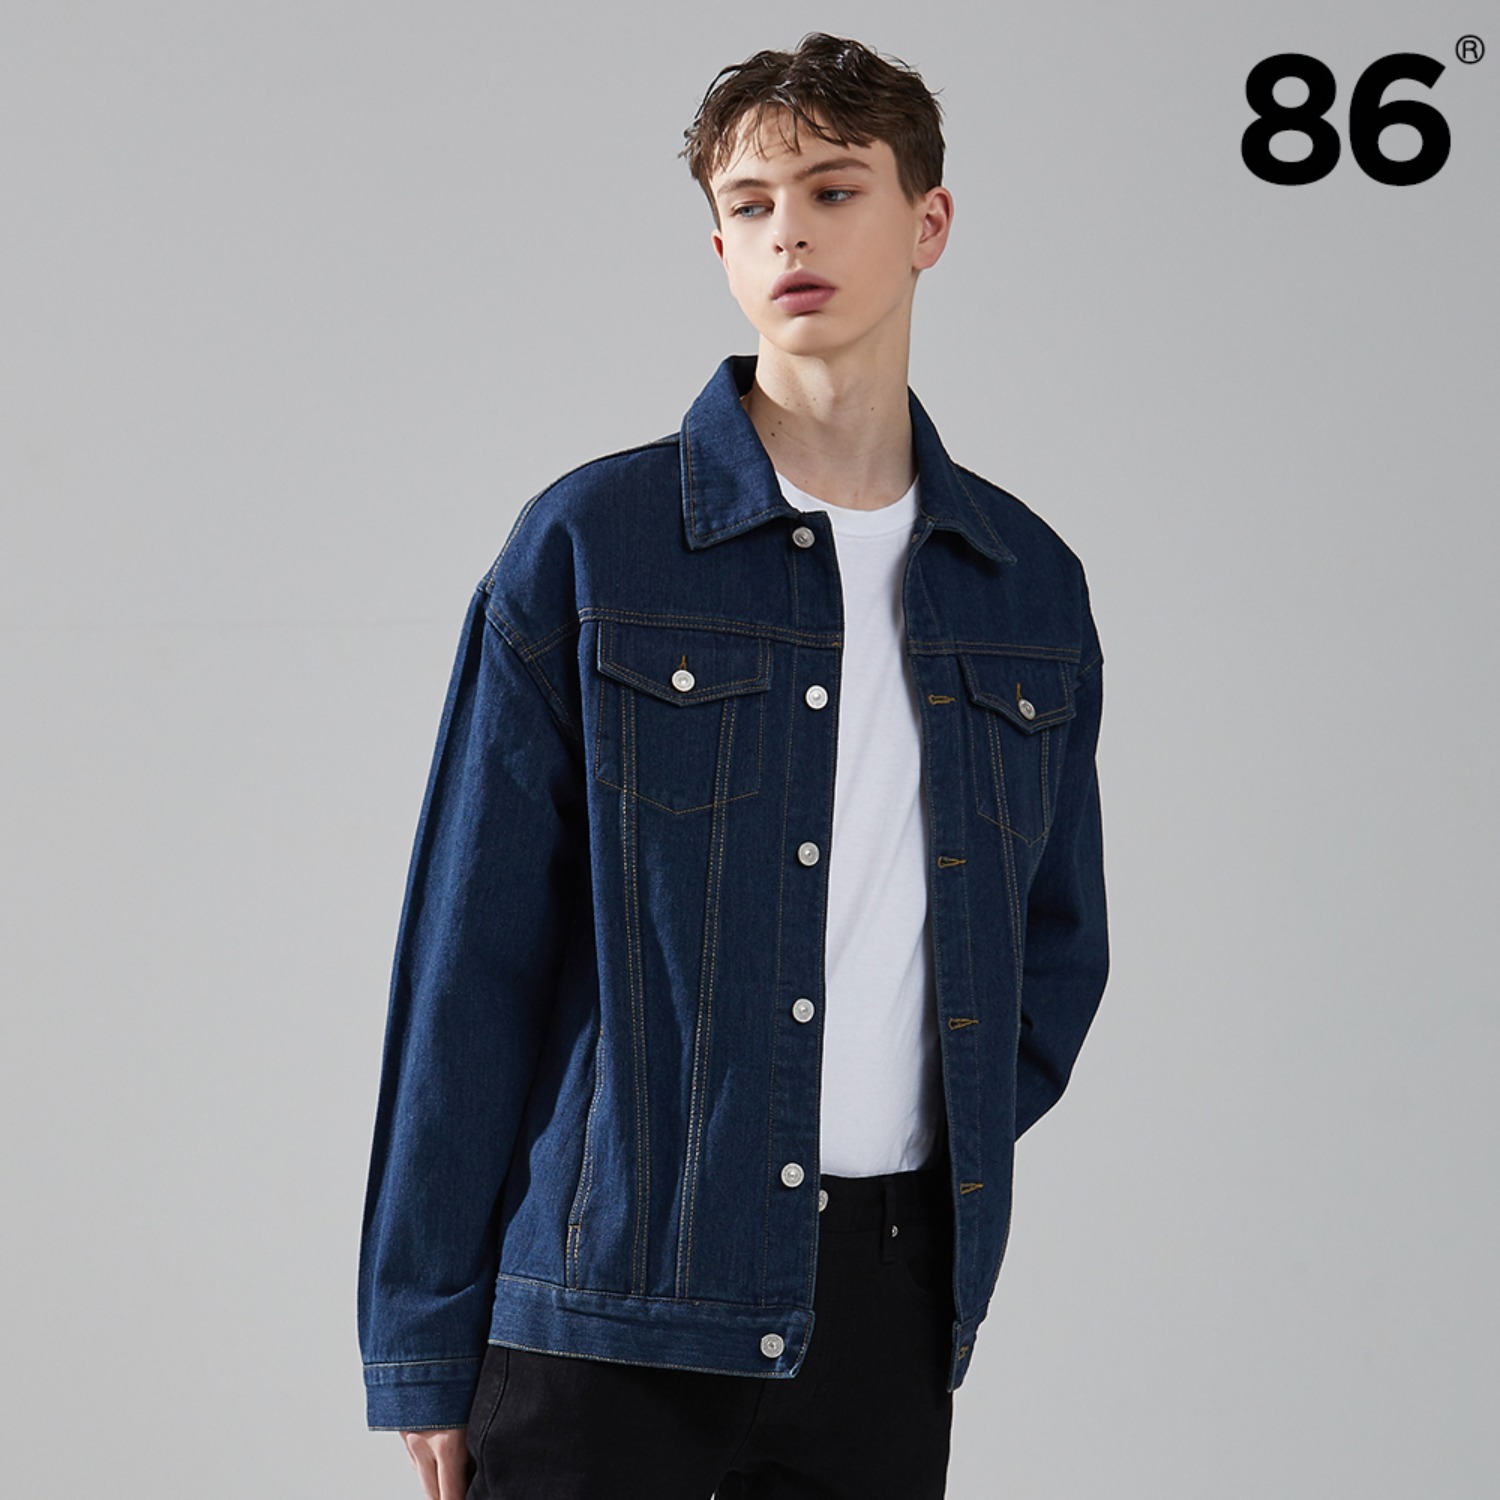 2724 Washing denim jacket (Blue)